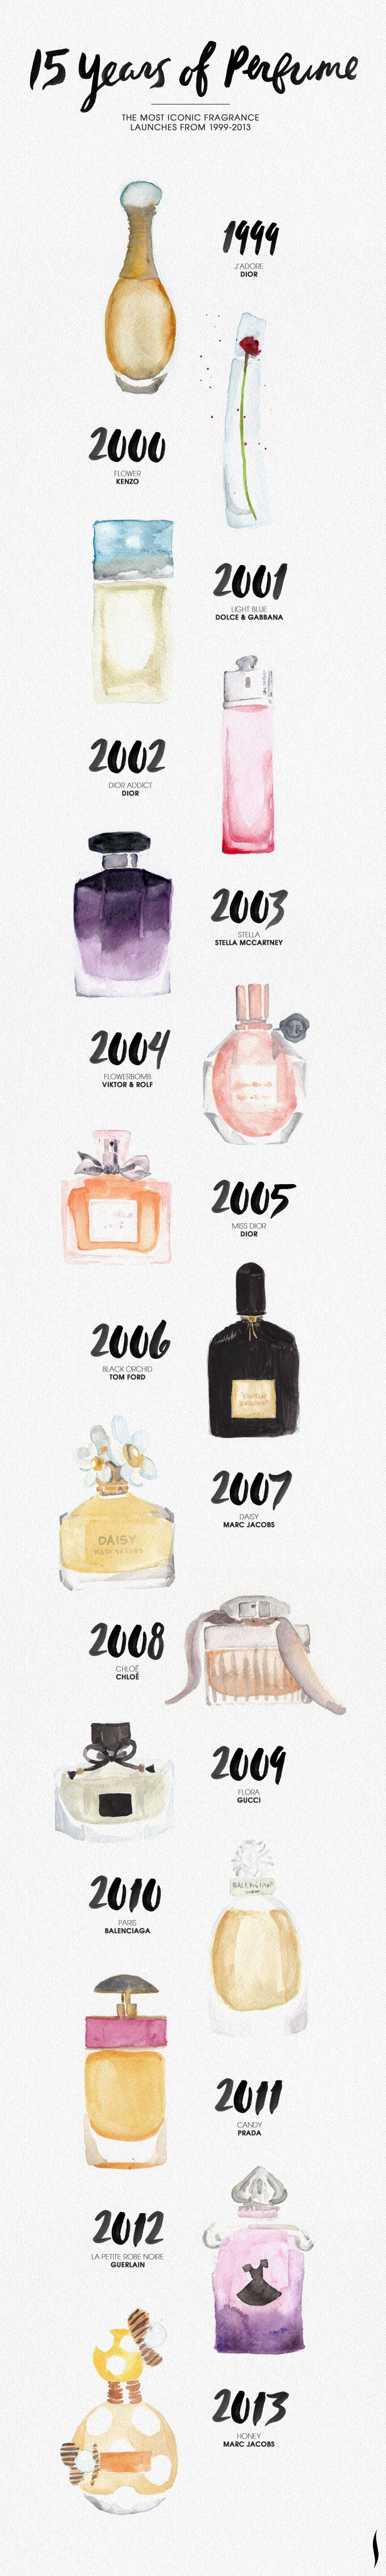 Scent is strongly linked to memory. What's your favorite #perfume launch of the past 15 years? {Sephora}